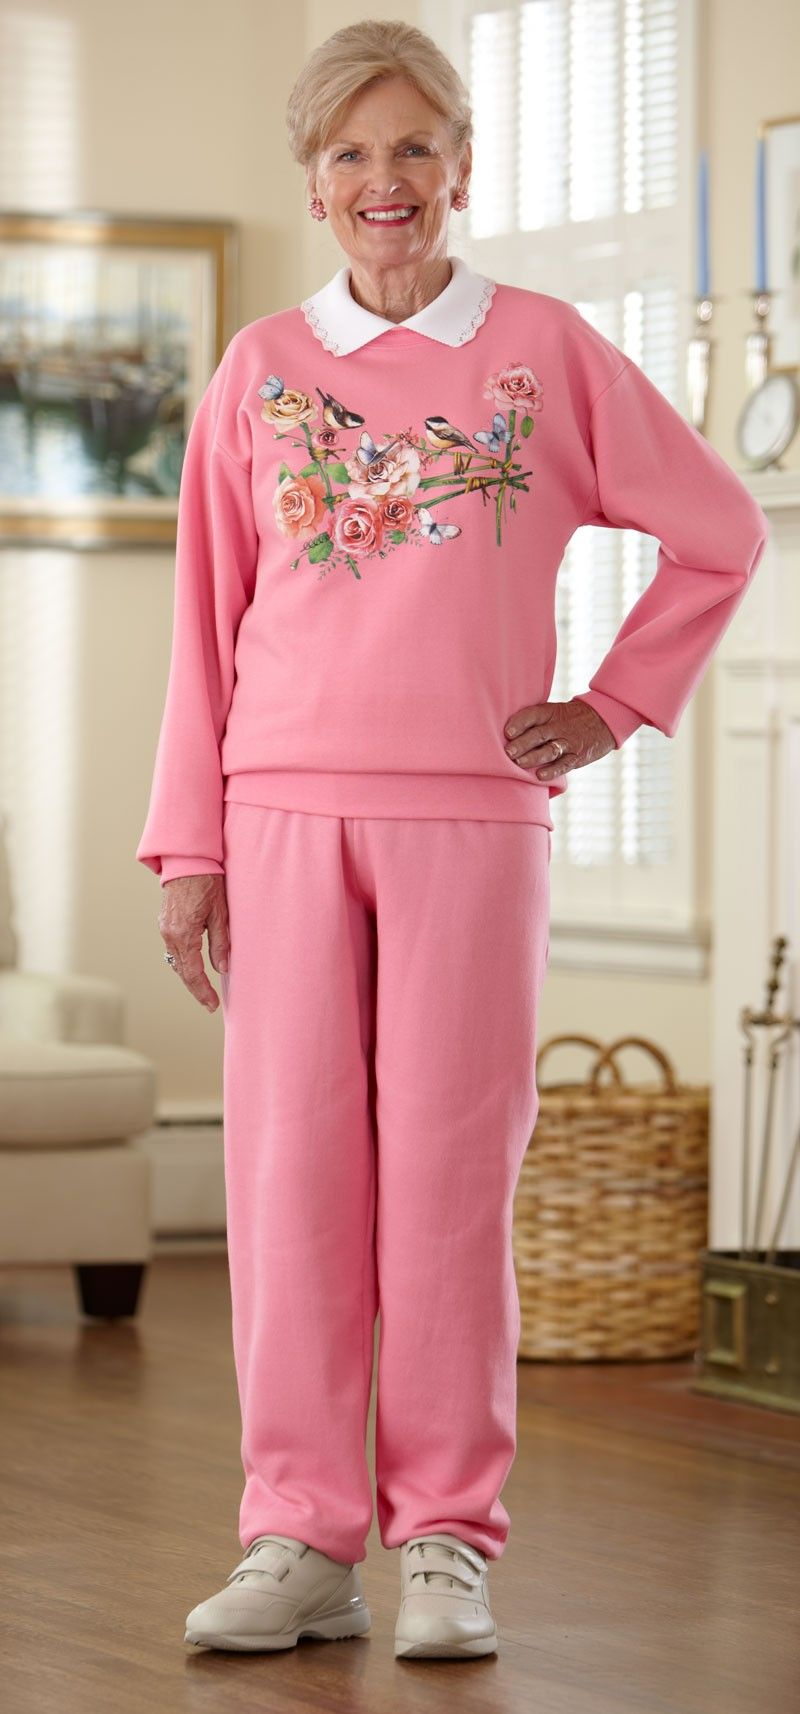 Polyester Jogging Suits For Older Women - Google Search  Character -2097